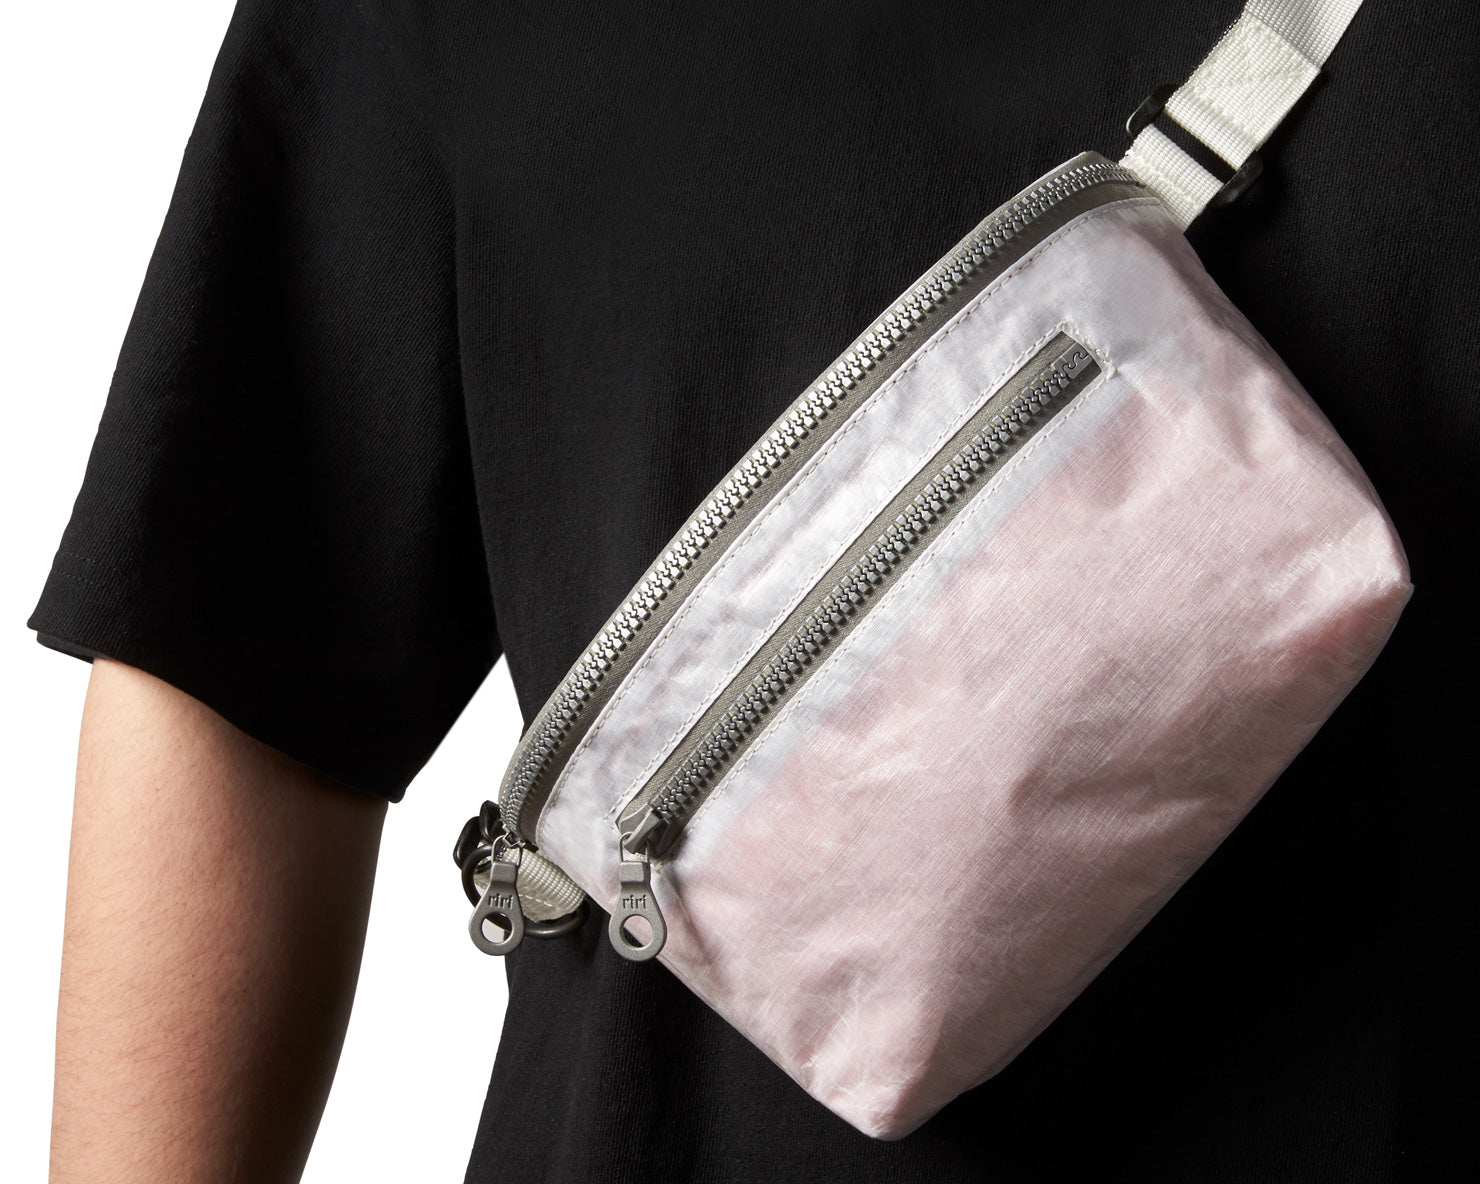 BELT BAG 2.0 | KILLSPENCER® - White Dyneema